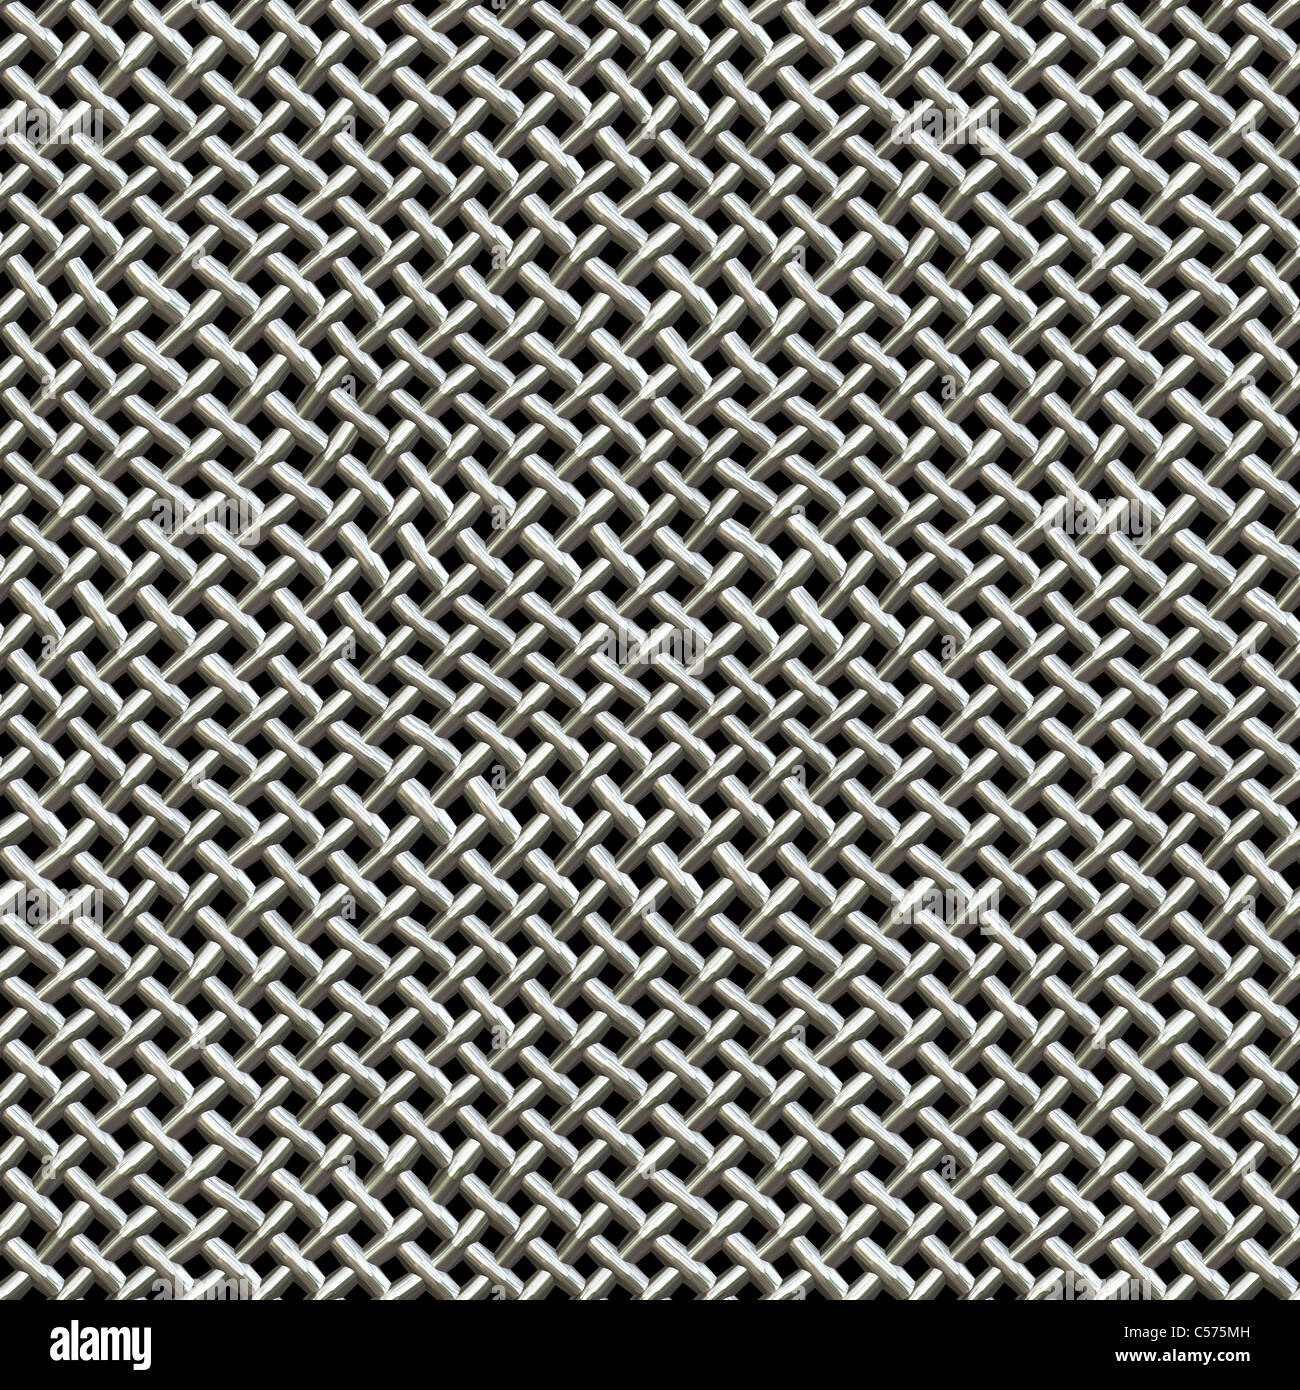 A silver metal wire mesh texture found on microphones. This tiles ...